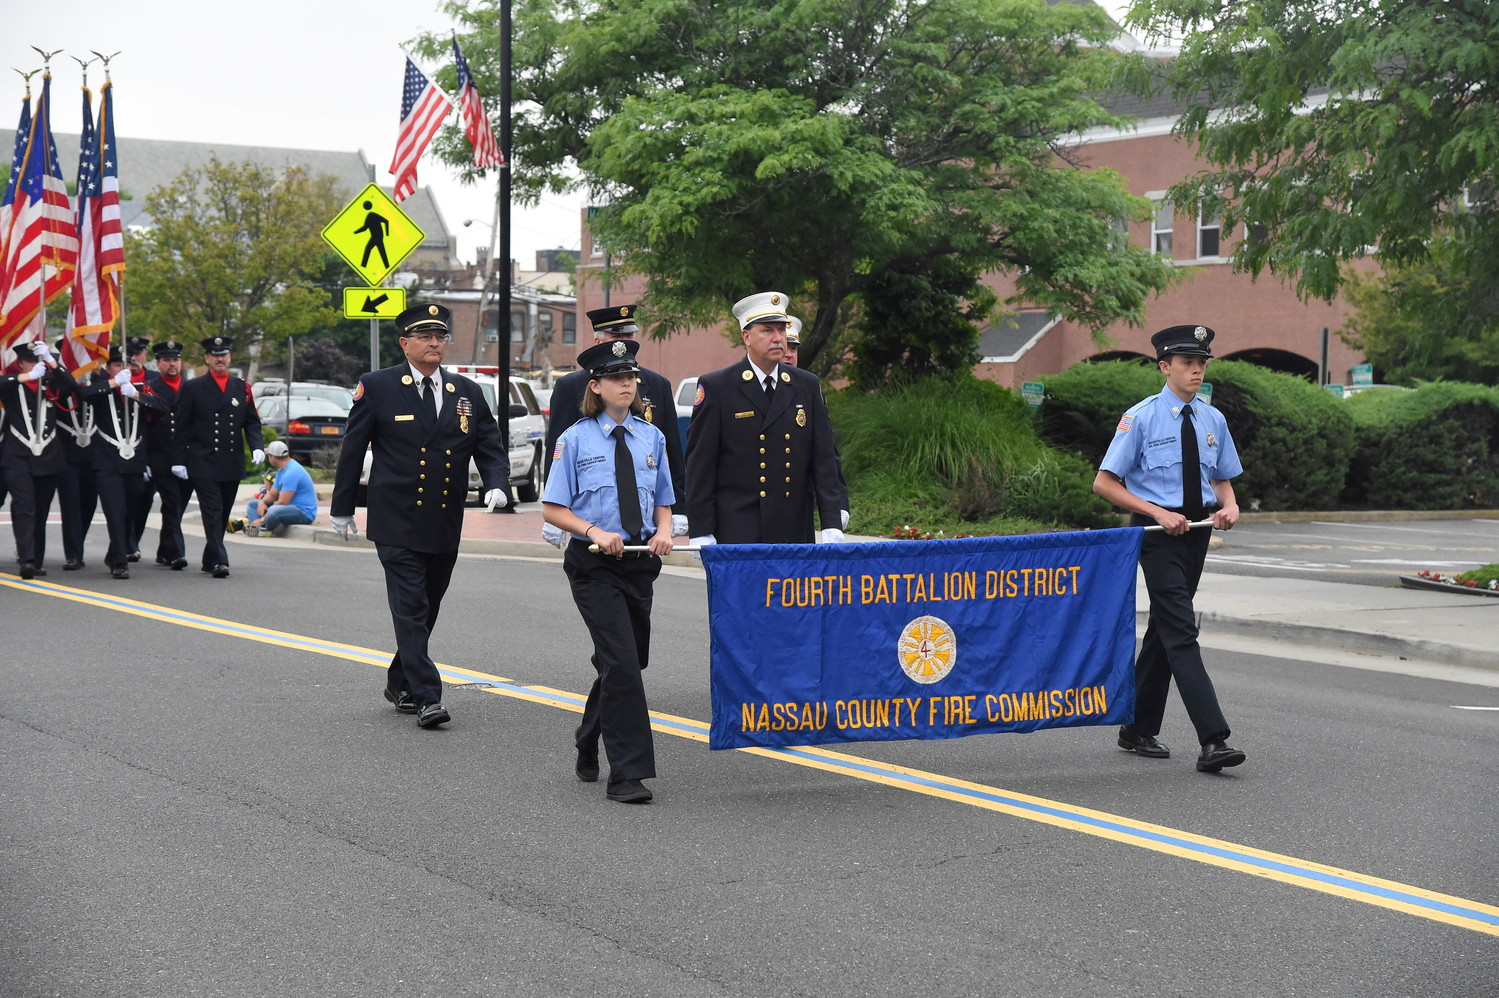 Fire departments in the Fourth Battalion and beyond marched at a parade in Rockville Centre on June 23.